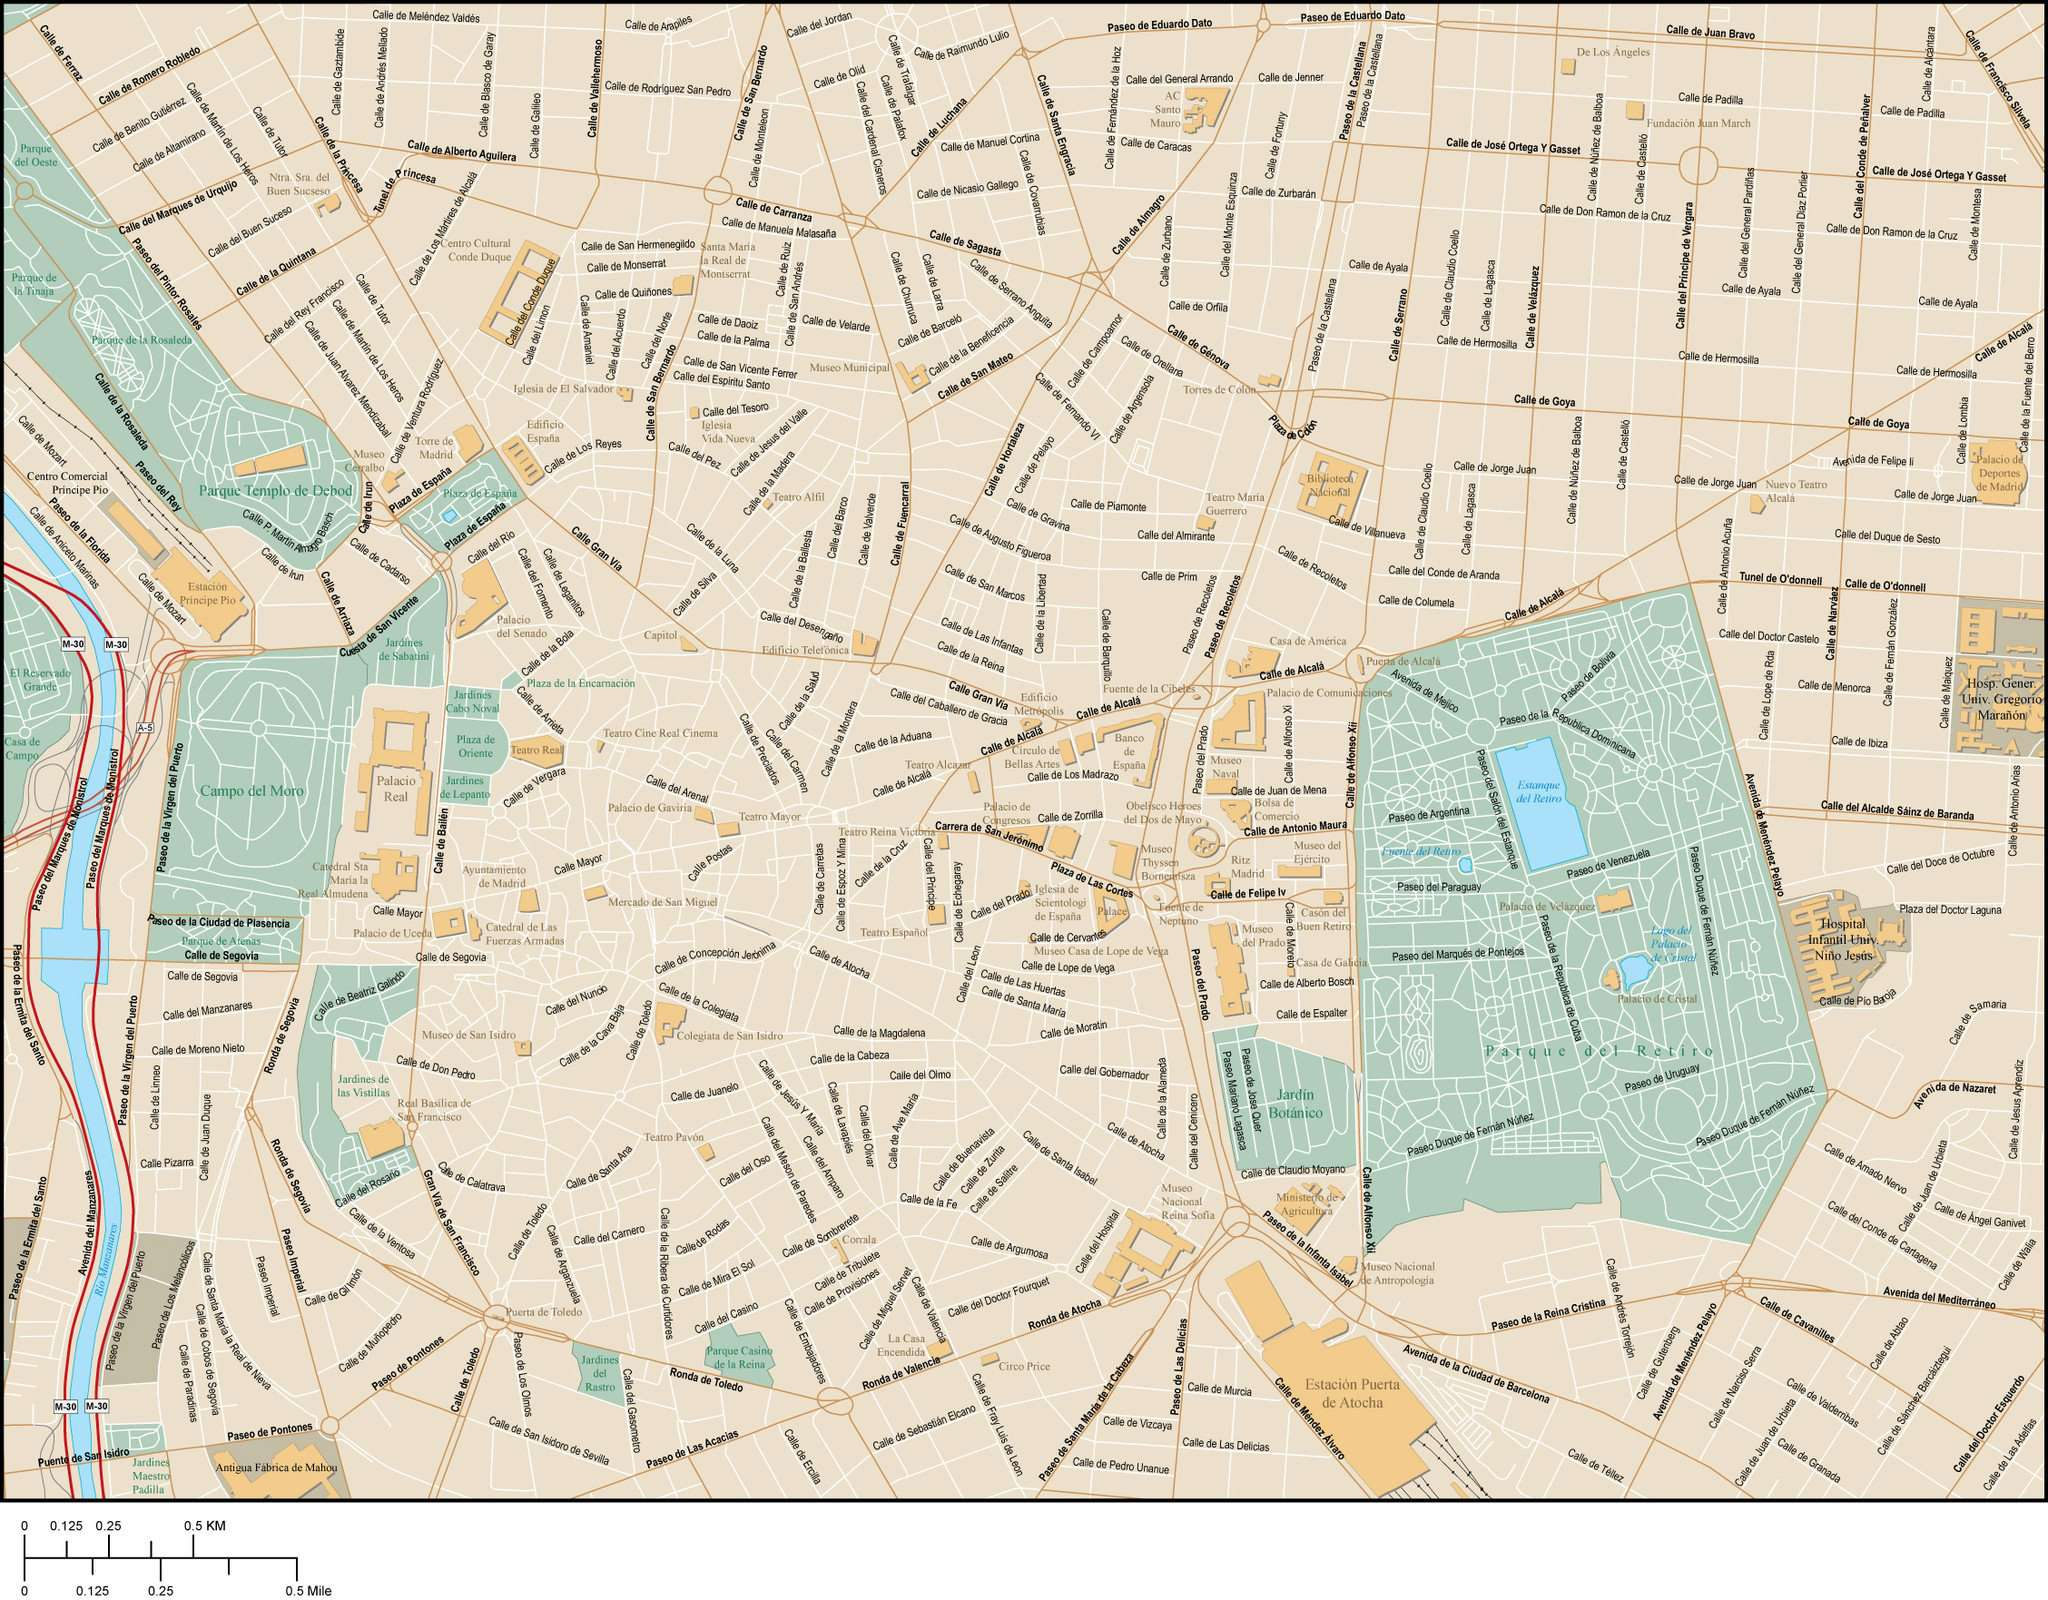 Madrid Downtown Area Map With Local Streets In Adobe Illustrator